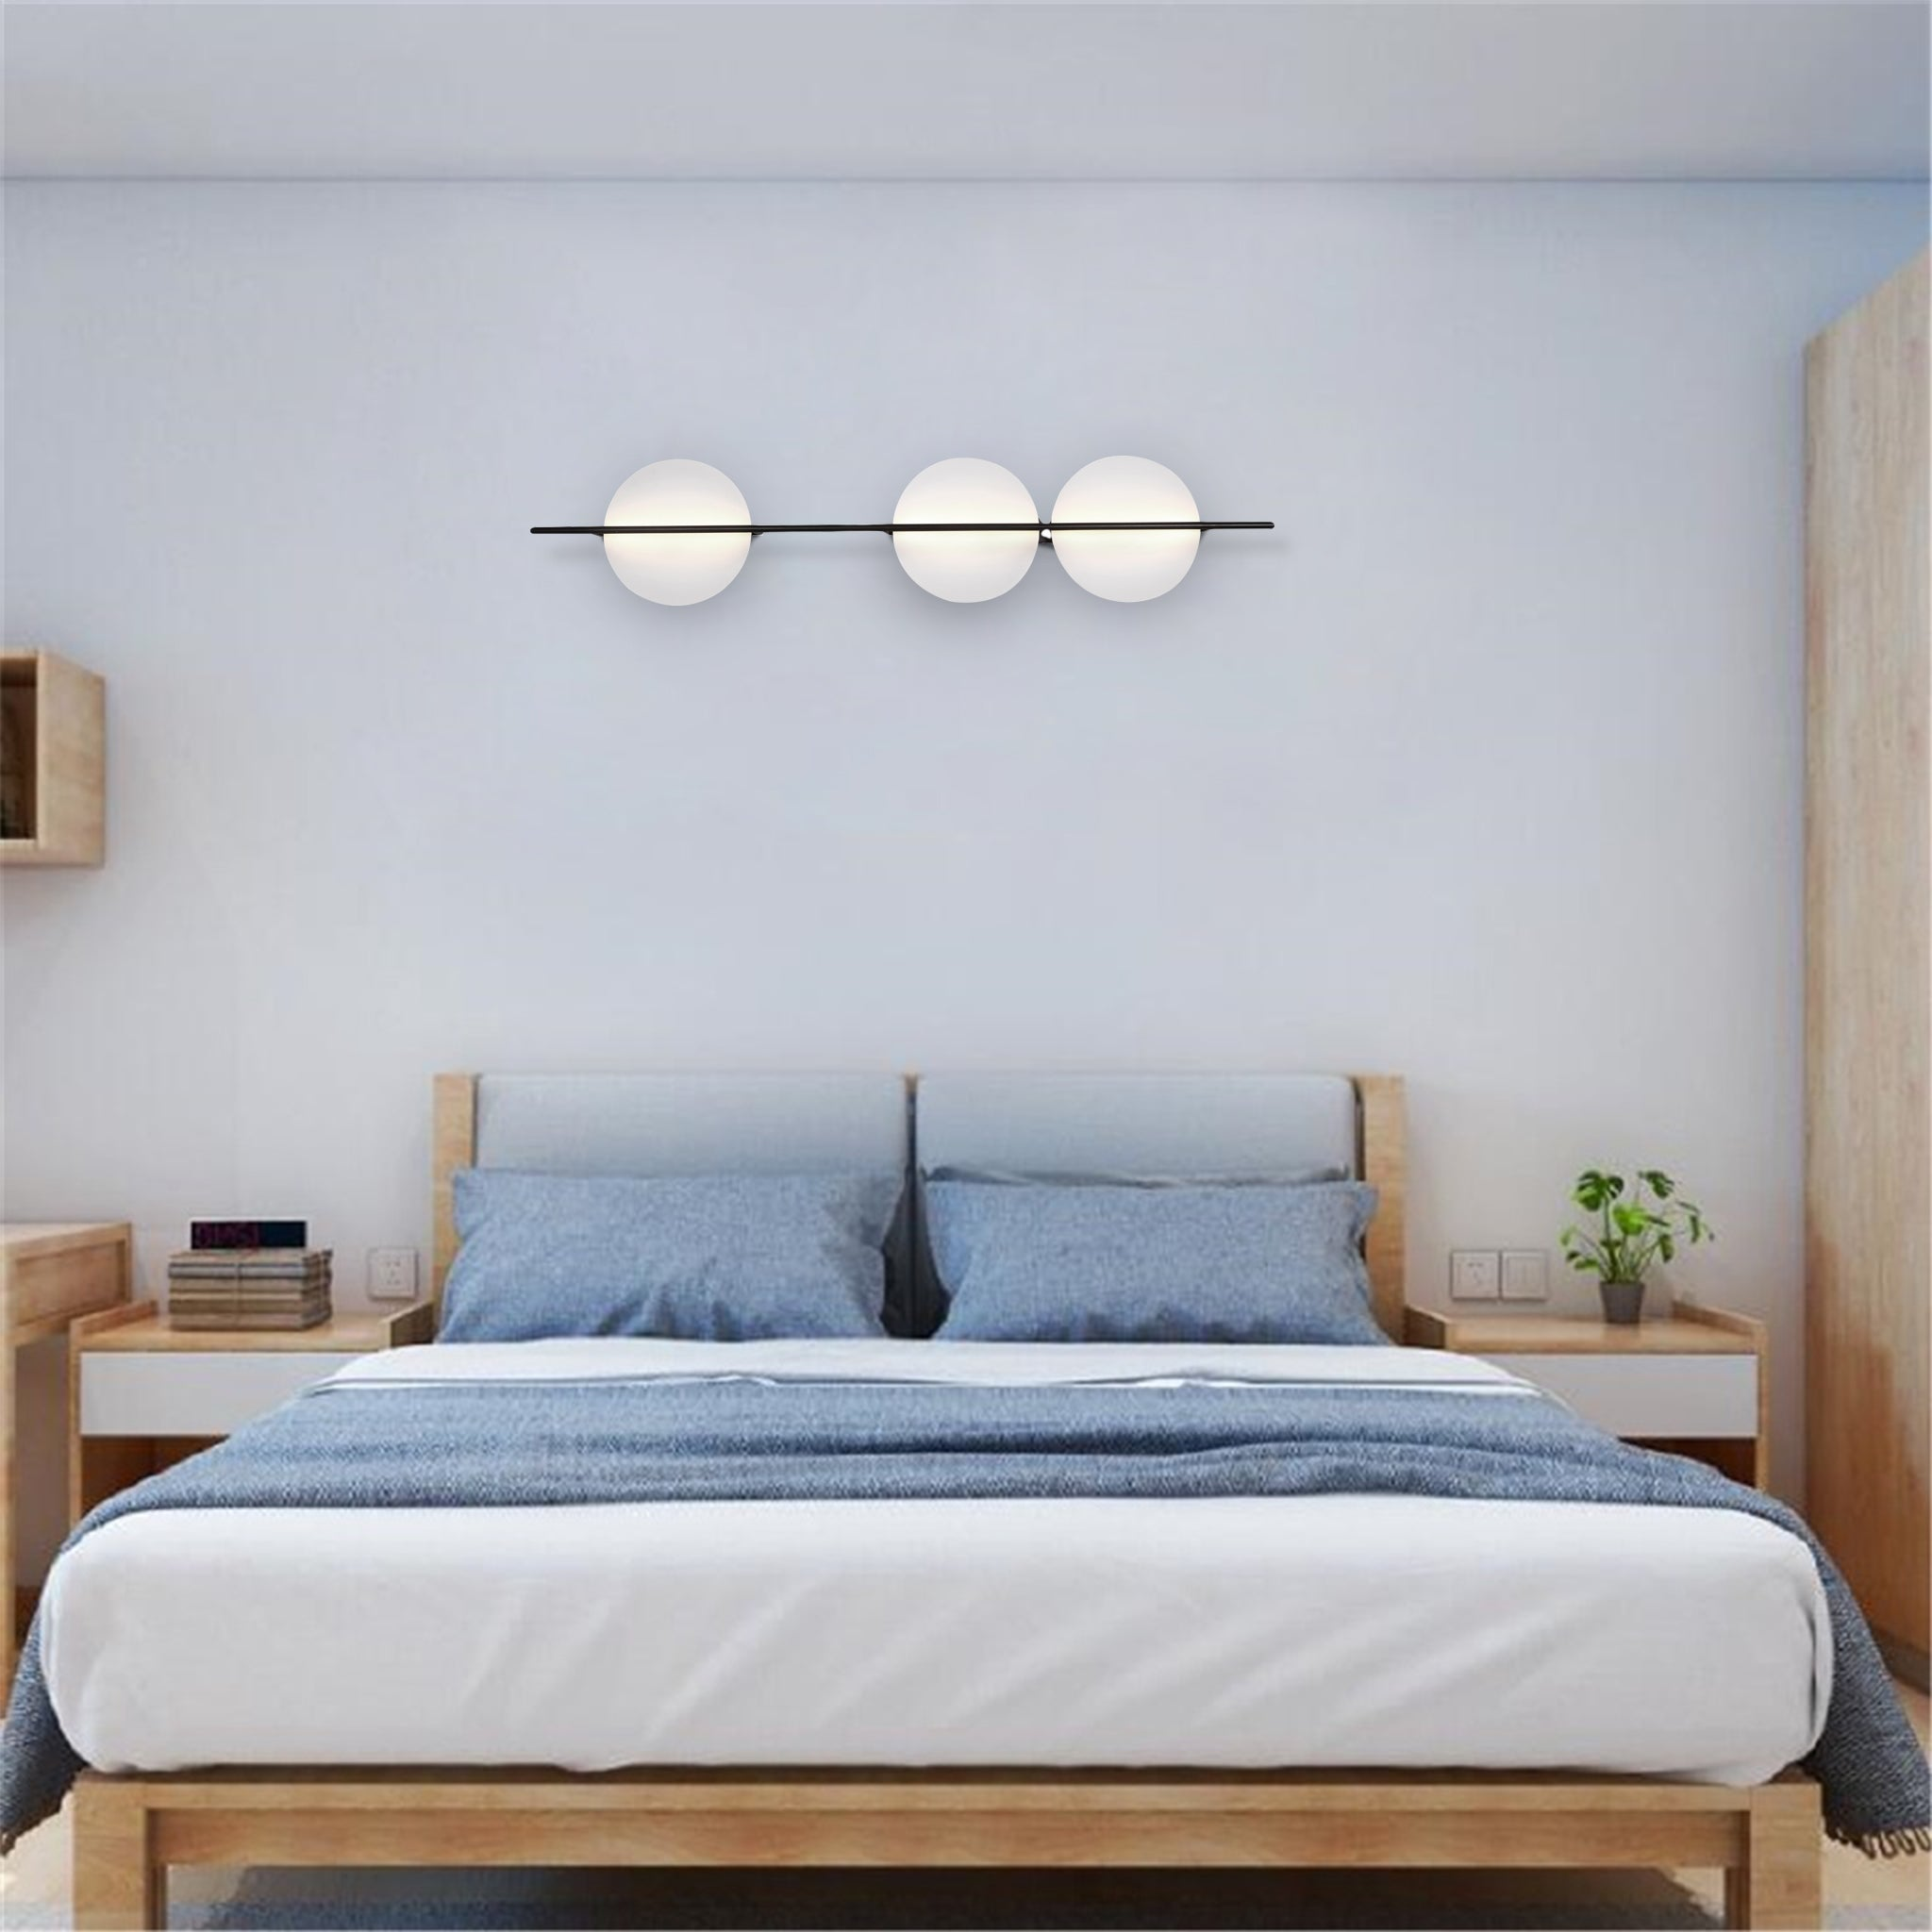 Bedroom Lights : A Comprehensive Guide on Bedroom Lighting Ideas